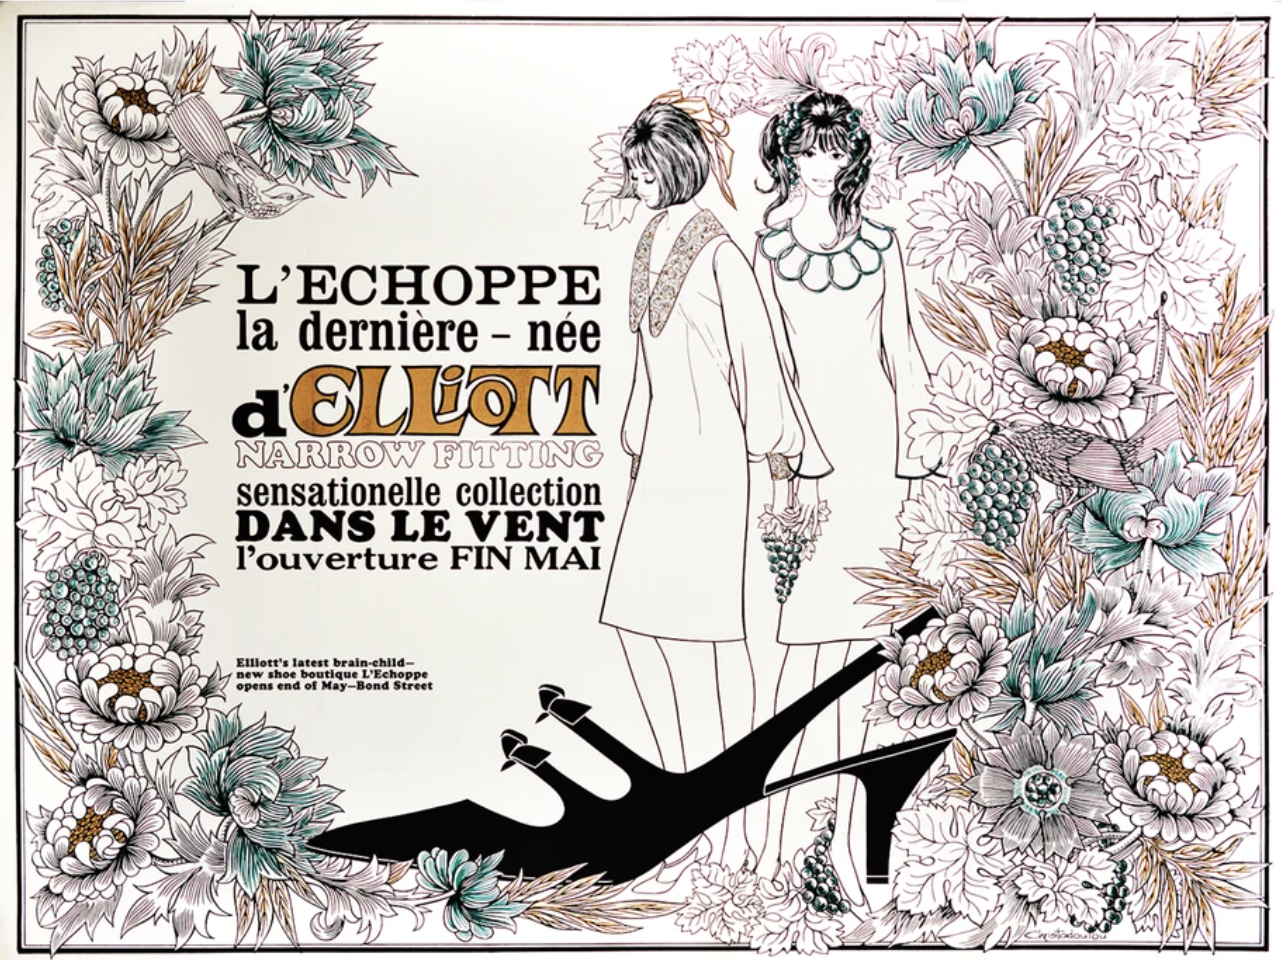 illustrational poster of two mod girls and a large black shoe